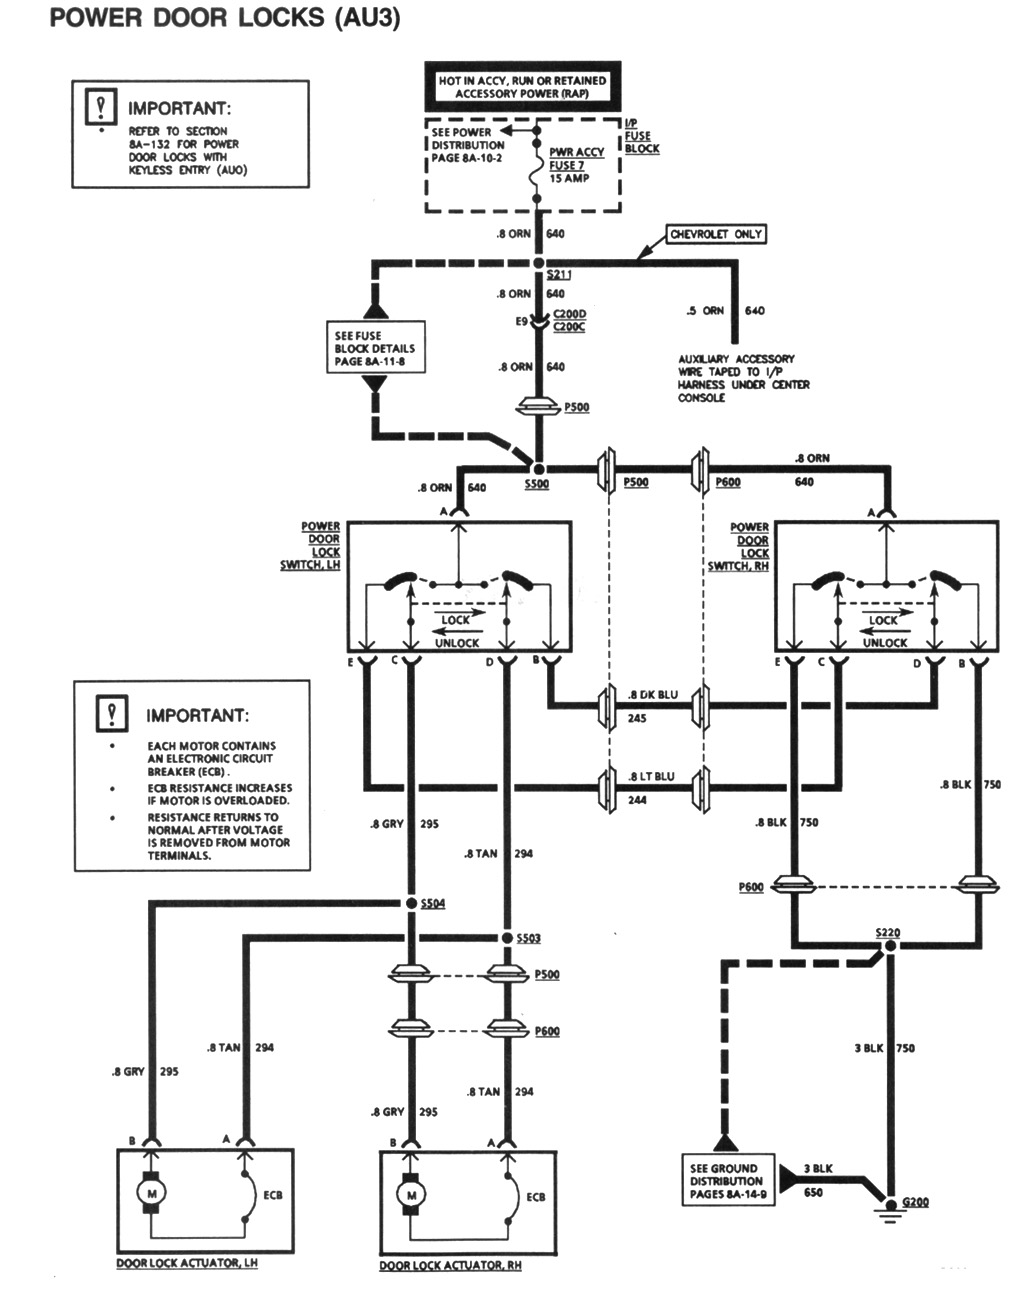 Mk 0978 Cluster Wiring Diagram On Chevy Express Power Mirror Wiring Diagram Free Diagram